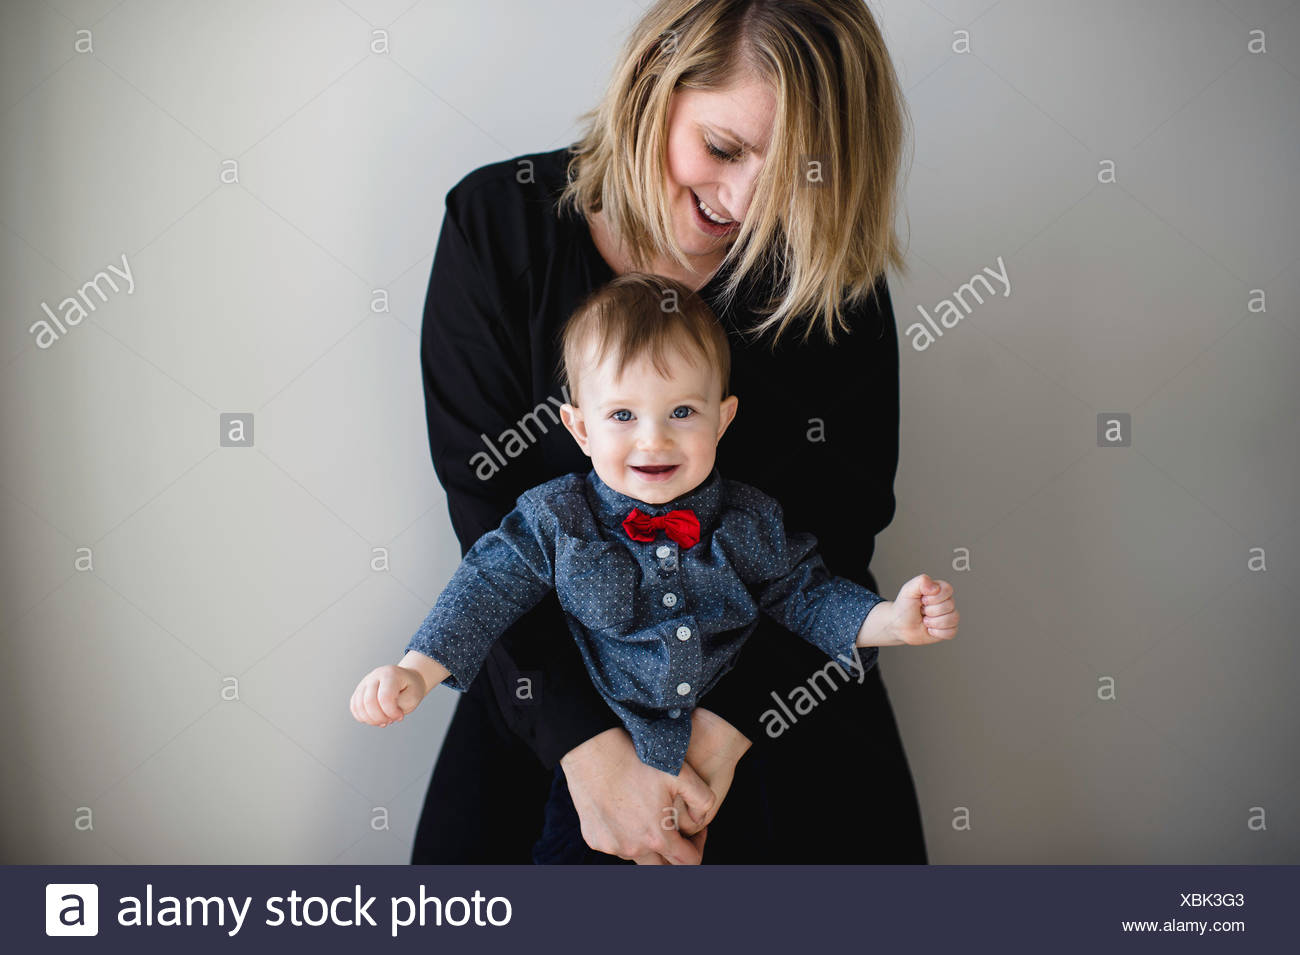 Portrait of male toddler in red bow tie being held by mother - Stock Image